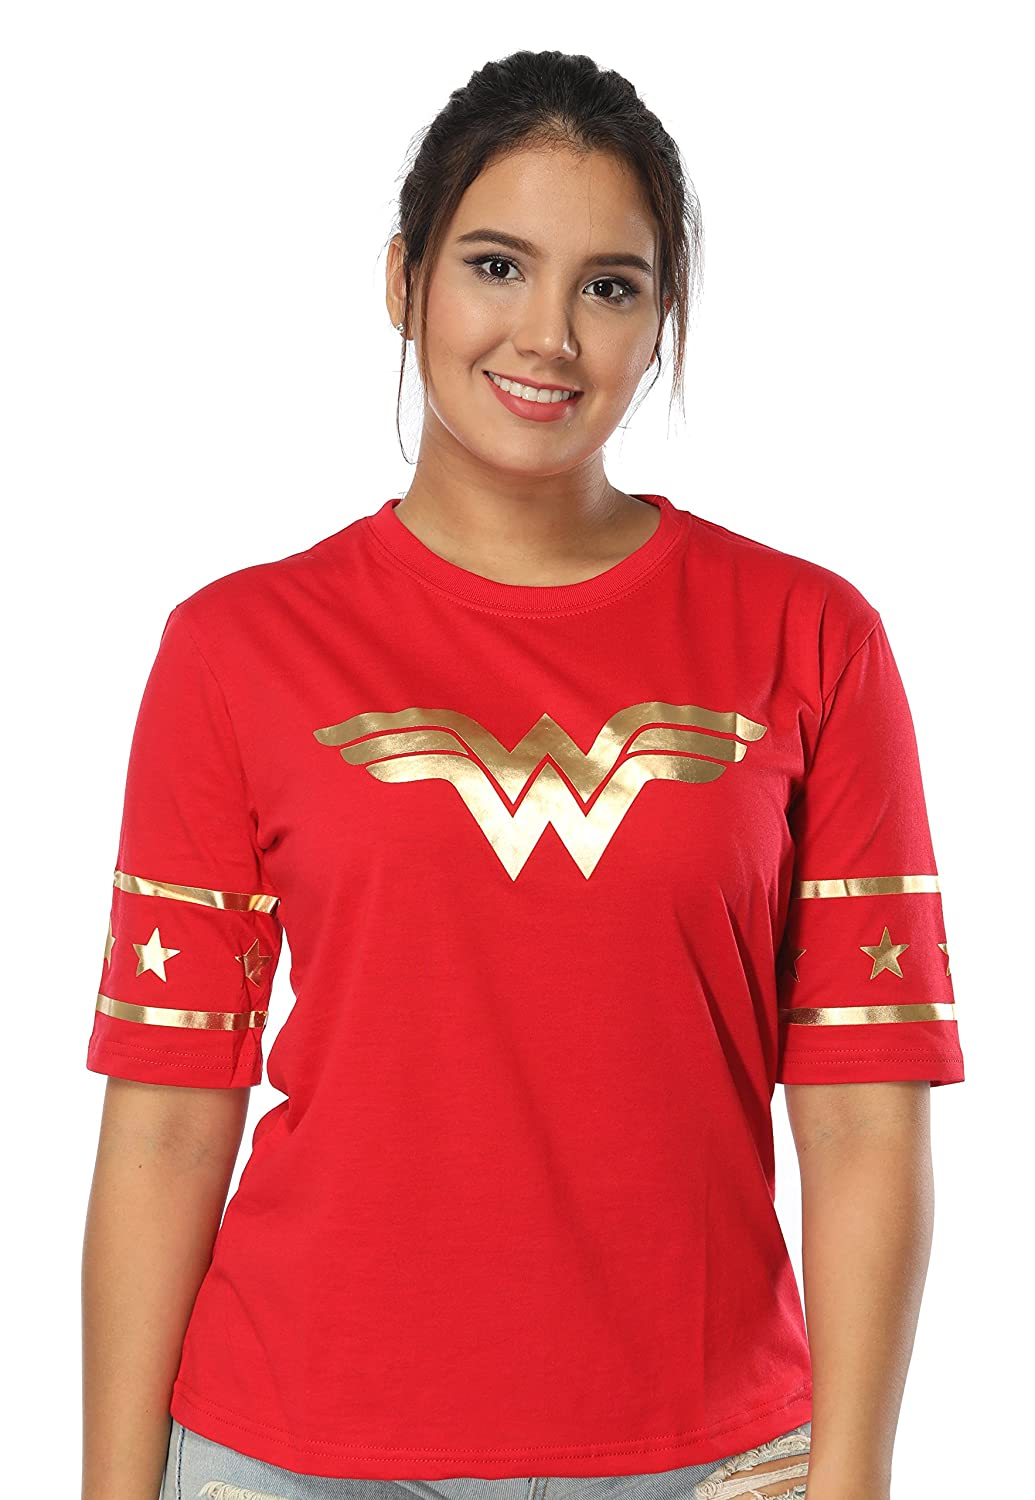 Justice League Wonder Women Golden Foil T-Shirt – Short Sleeved Women, Girls Wear - Junior Size